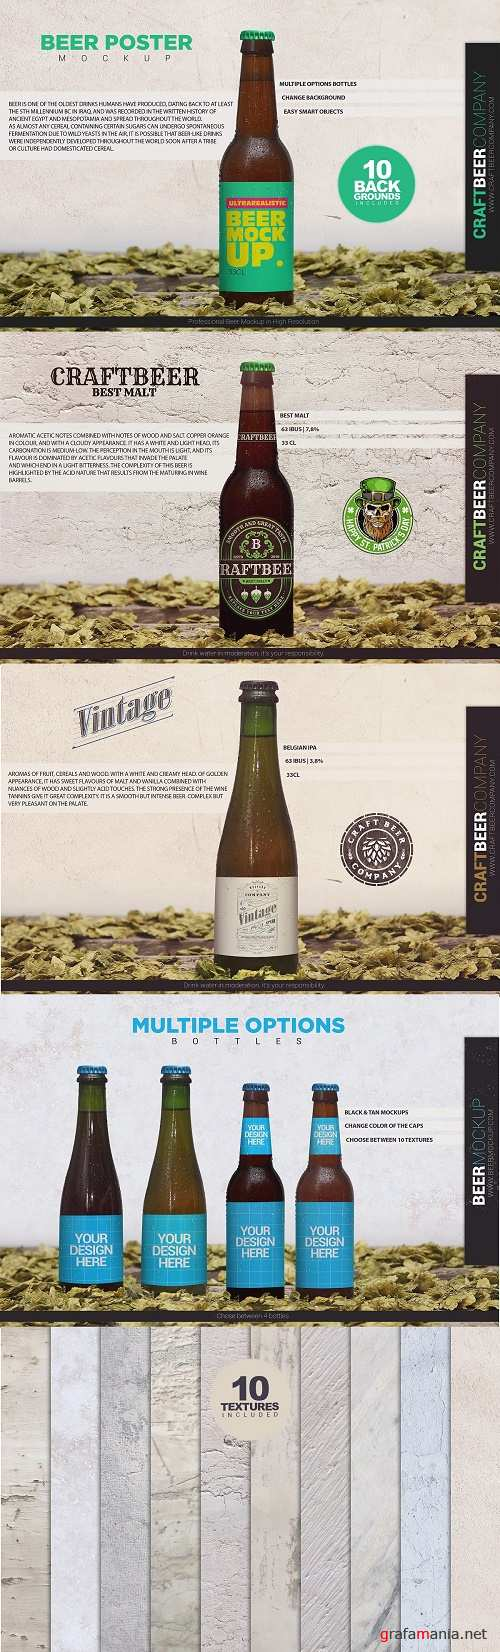 Beer Poster Template - 4012182